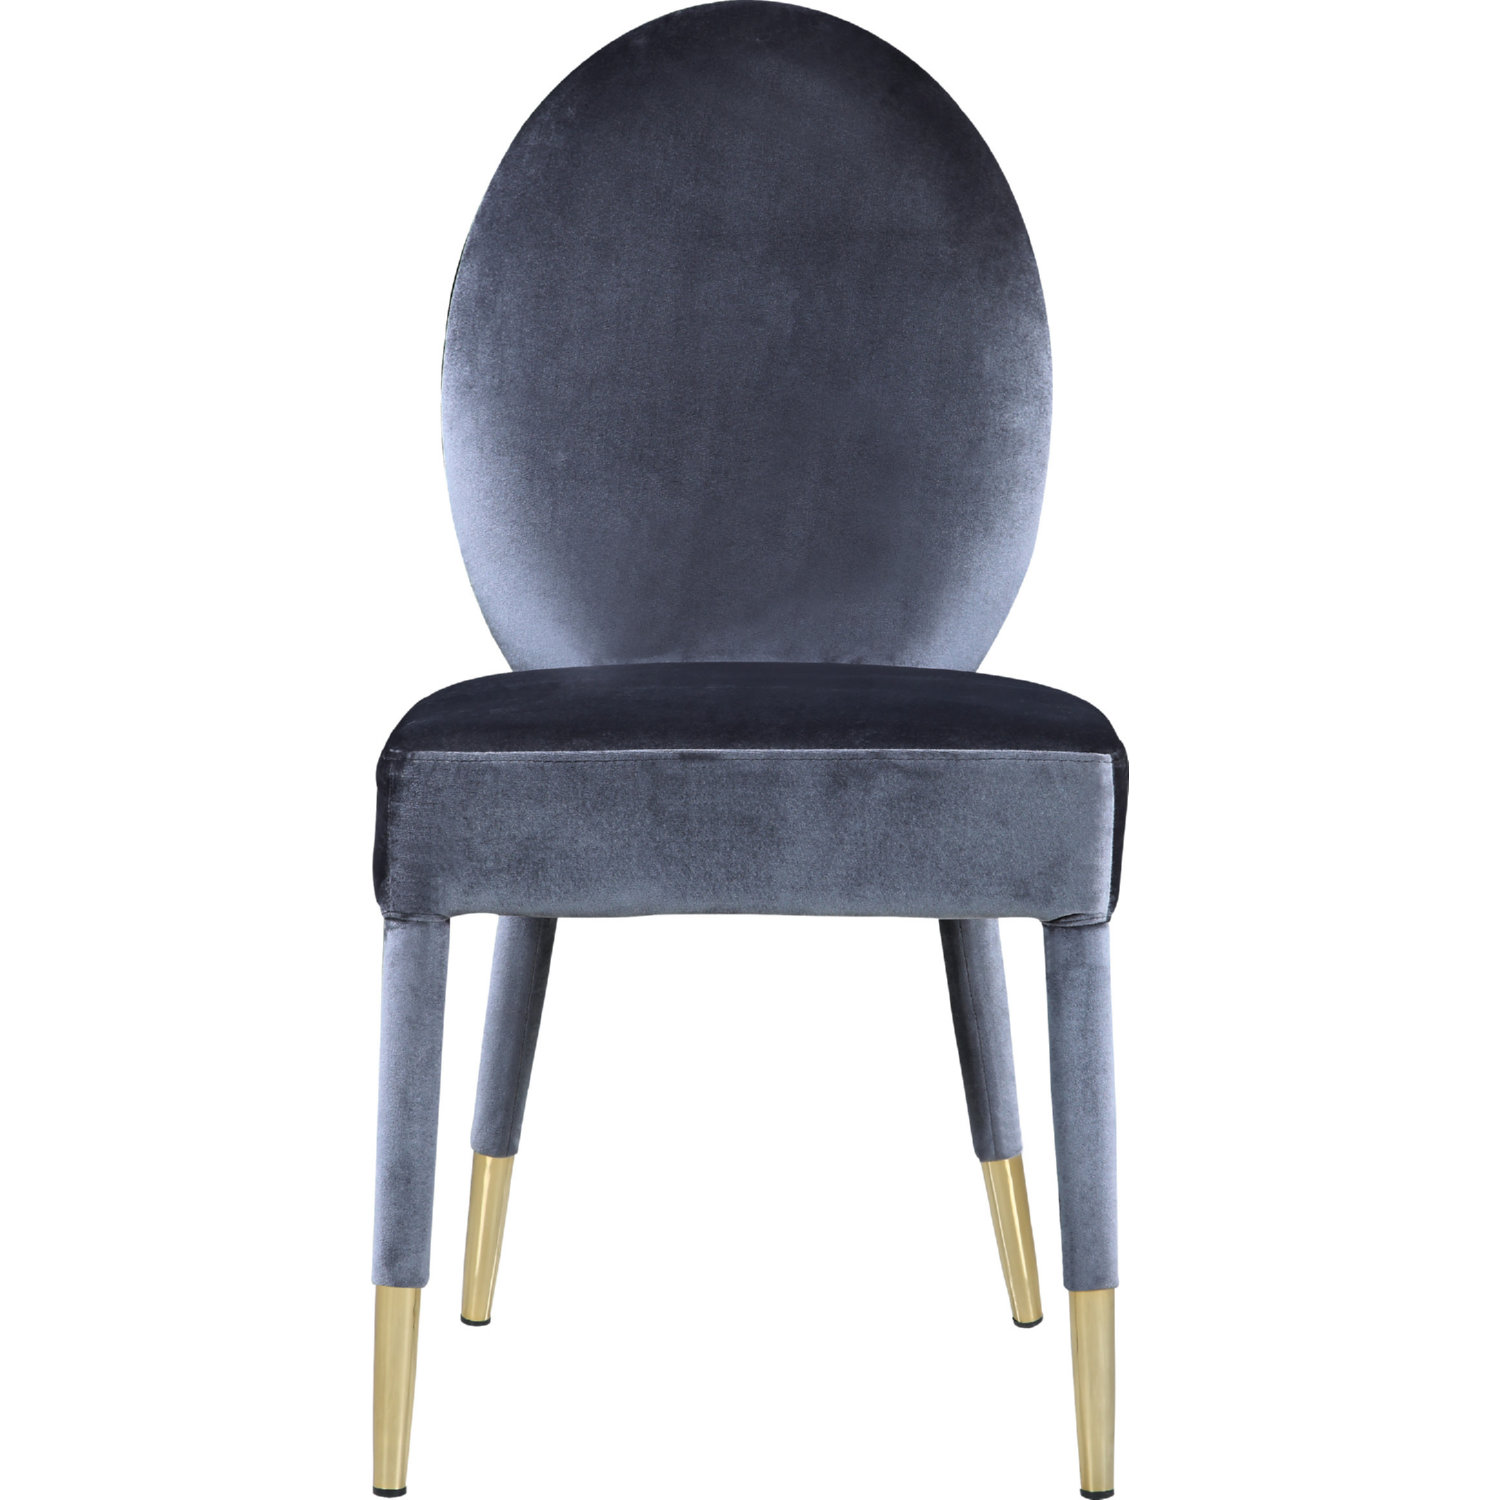 Wondrous Leverett Oval Back Dining Chair In Grey Velvet Set Of 2 By Chic Home Theyellowbook Wood Chair Design Ideas Theyellowbookinfo